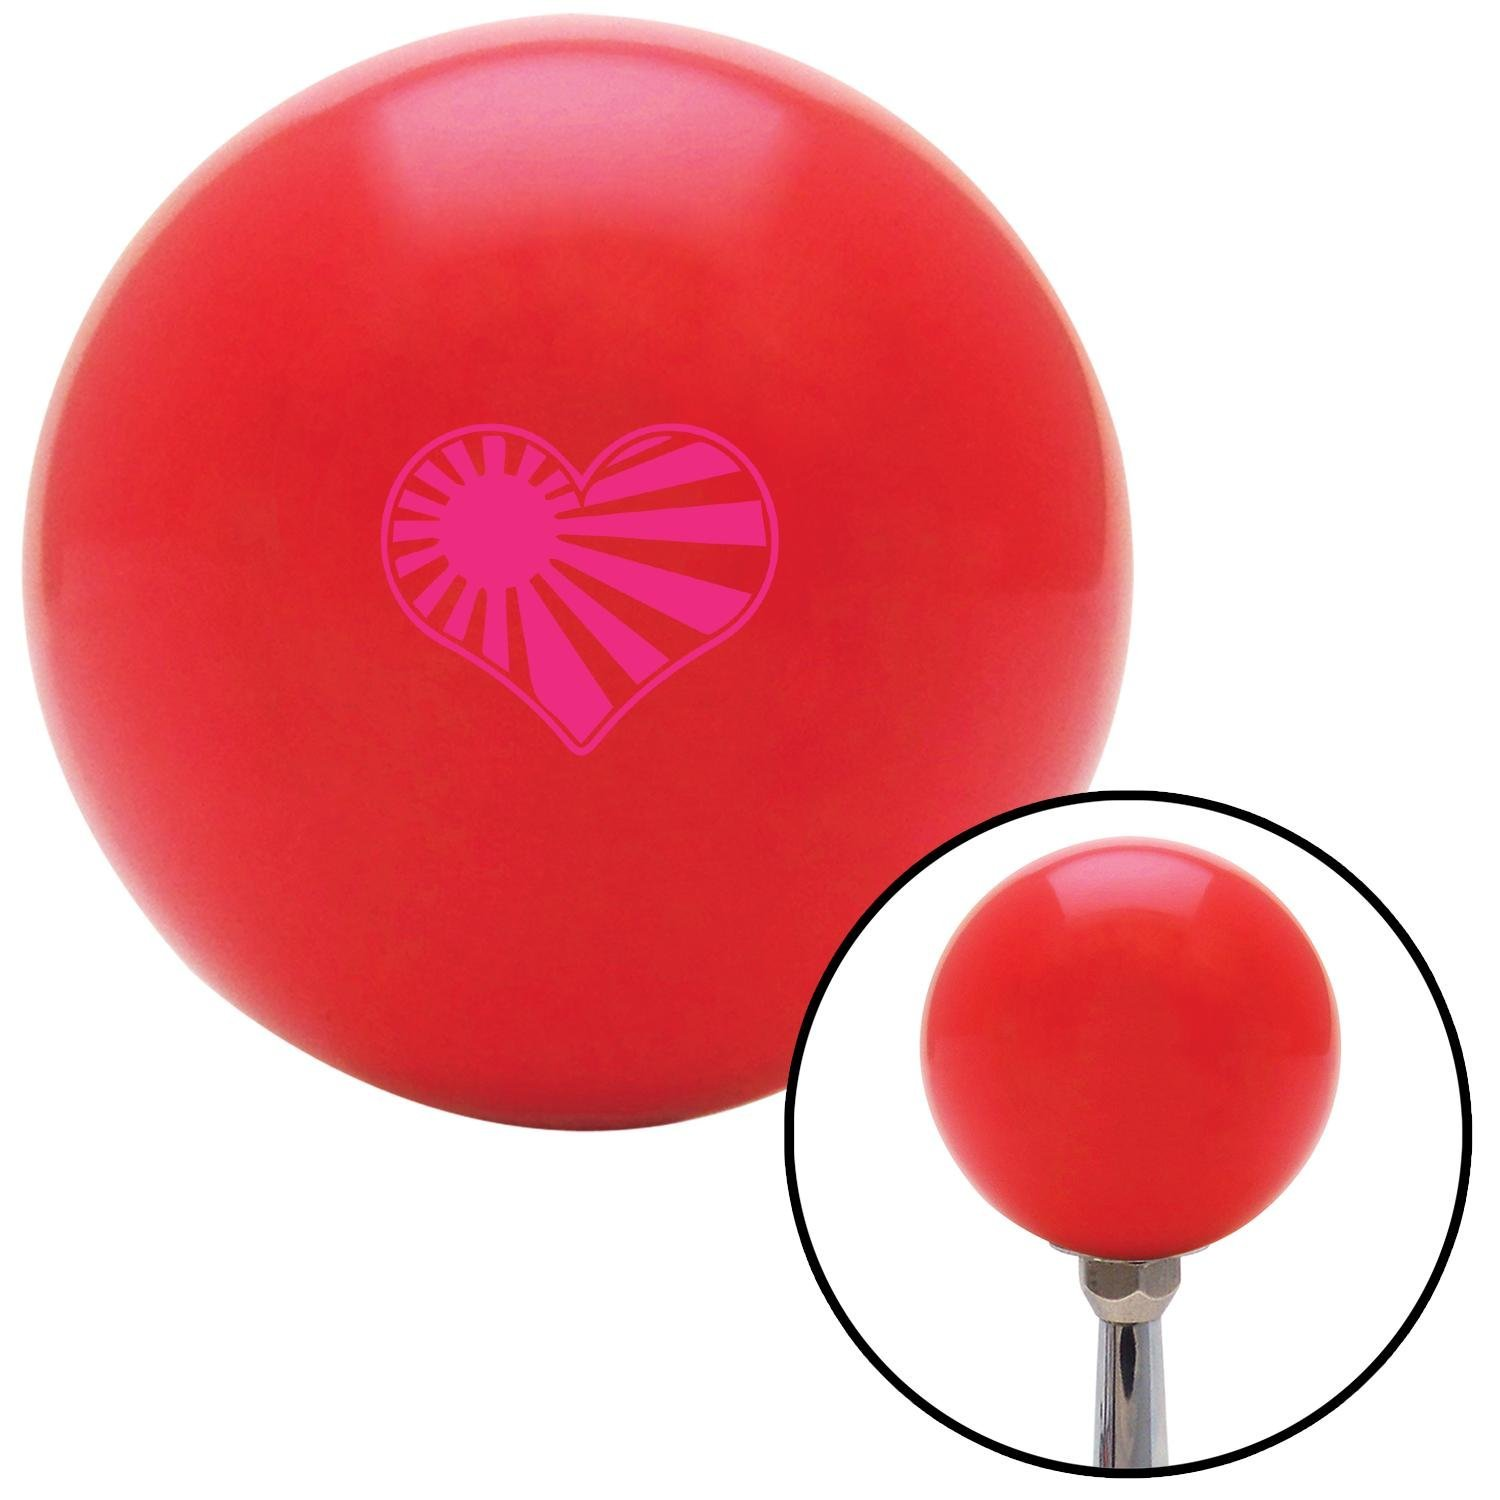 American Shifter 271780 Shift Knob Company Pink Rising Sun Heart Red with M16 x 1.5 Insert